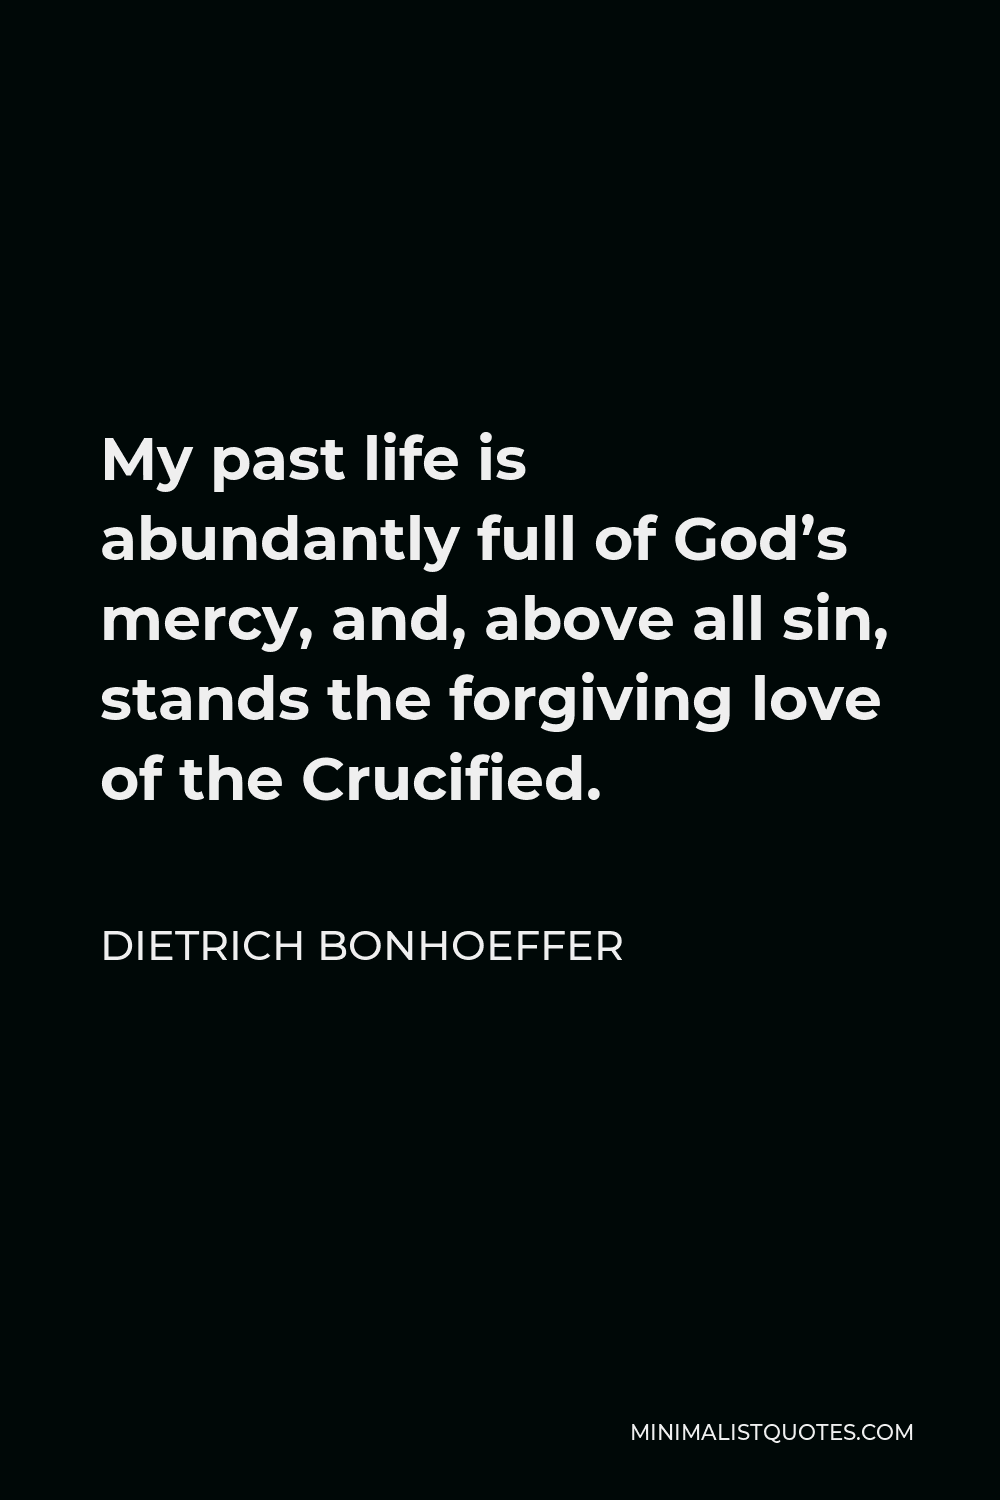 Dietrich Bonhoeffer Quote - My past life is abundantly full of God's mercy, and, above all sin, stands the forgiving love of the Crucified.